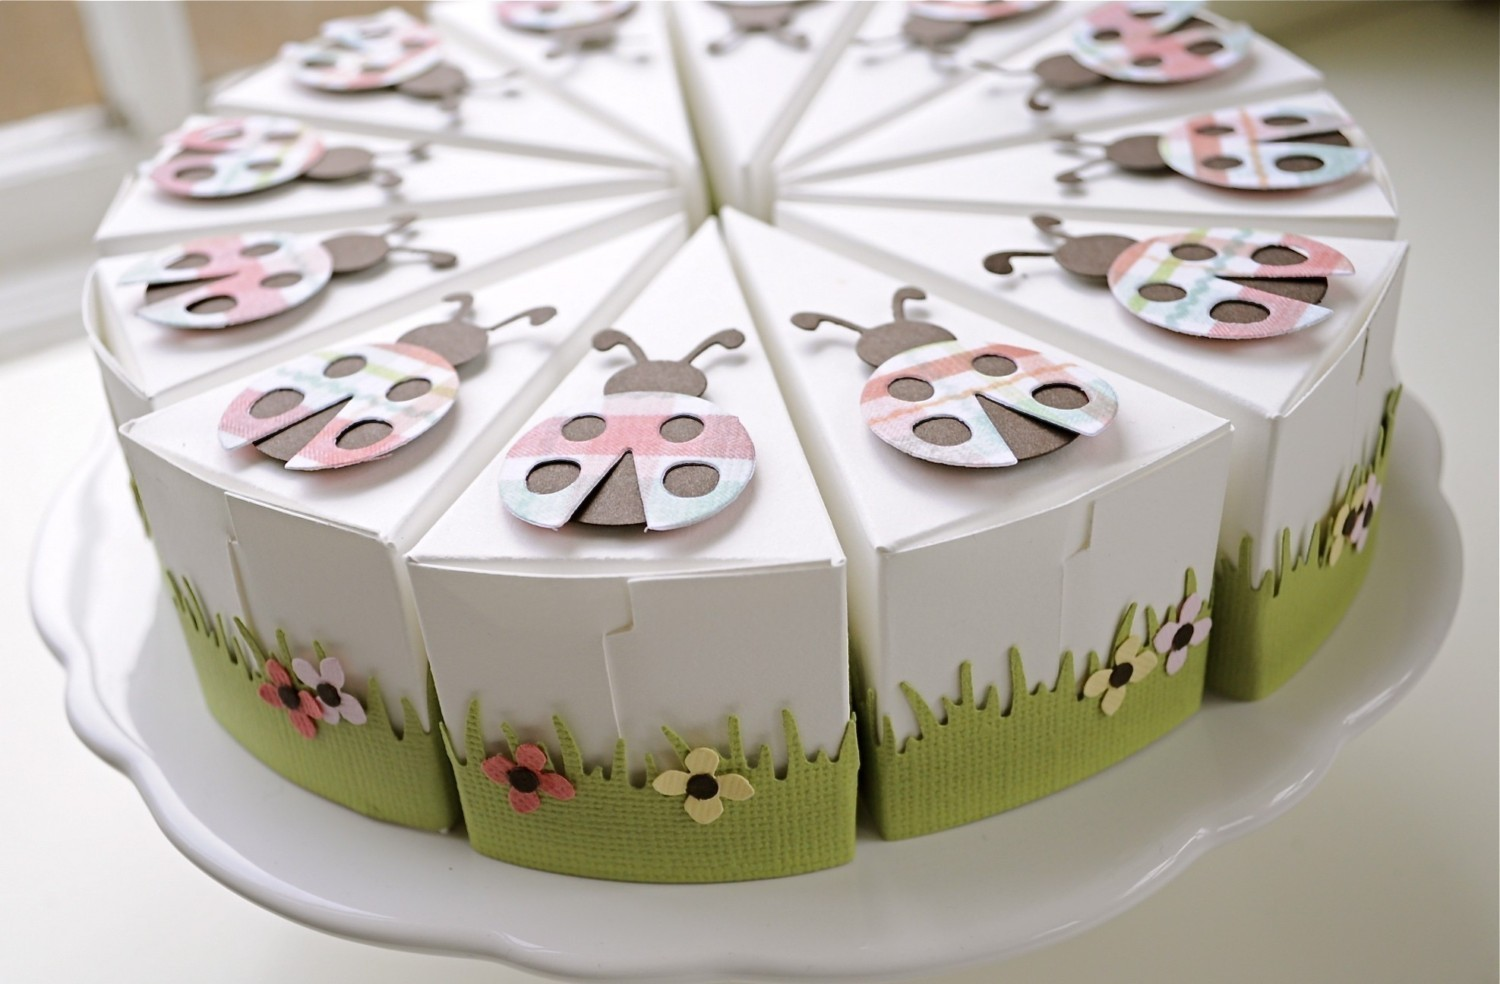 how to make a cake box out of paper